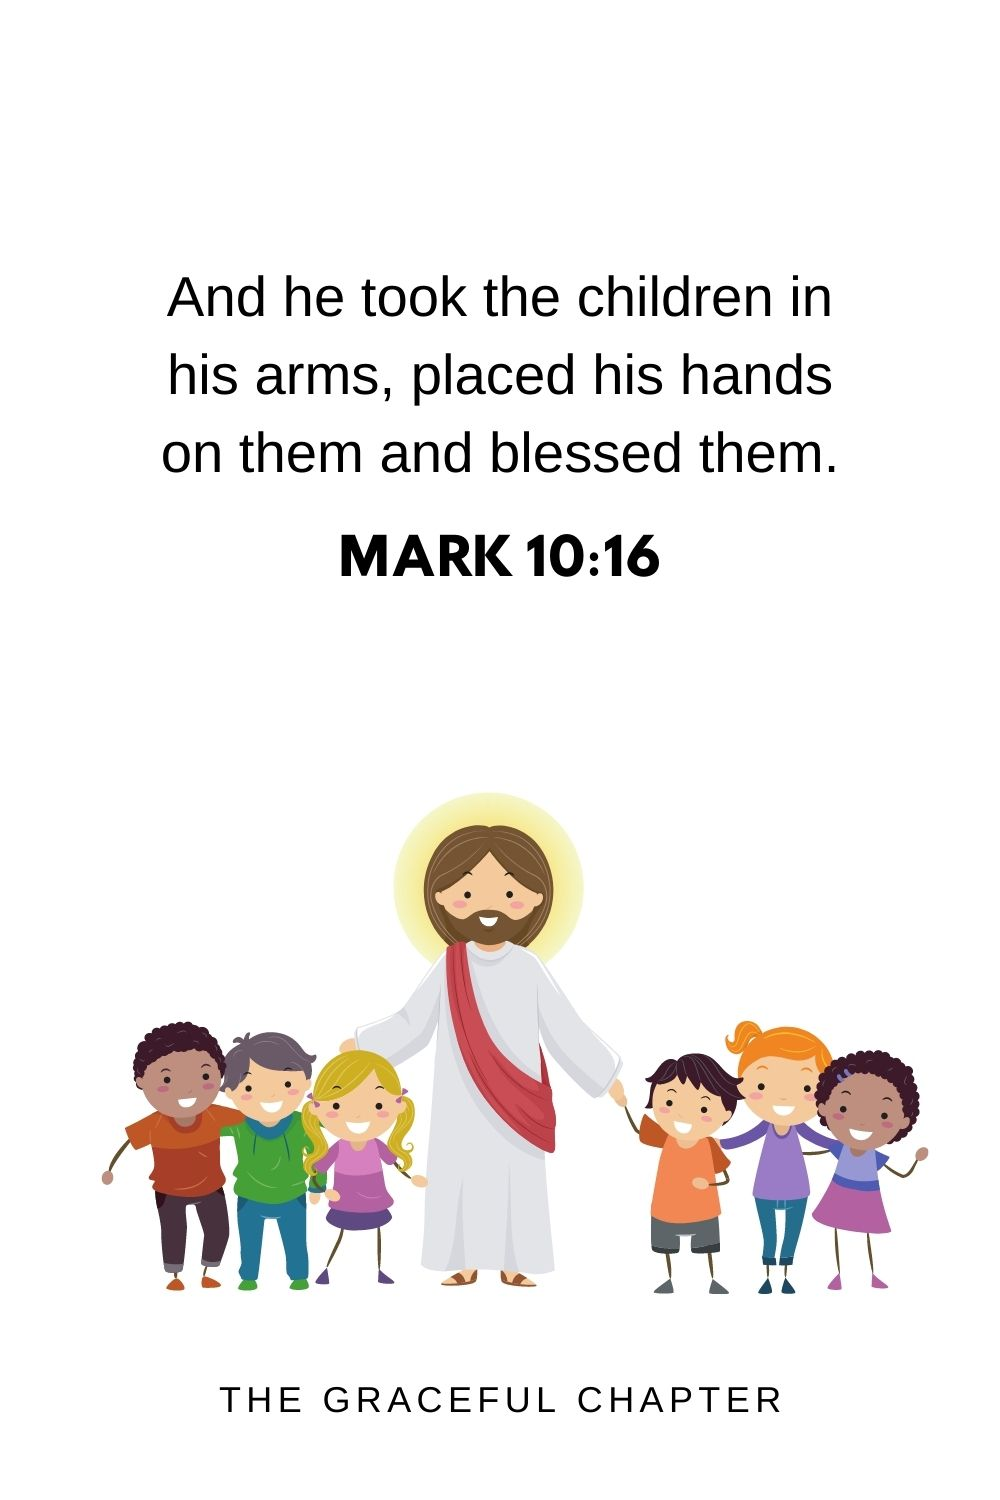 And he took the children in his arms, placed his hands on them and blessed them. Mark 10:16